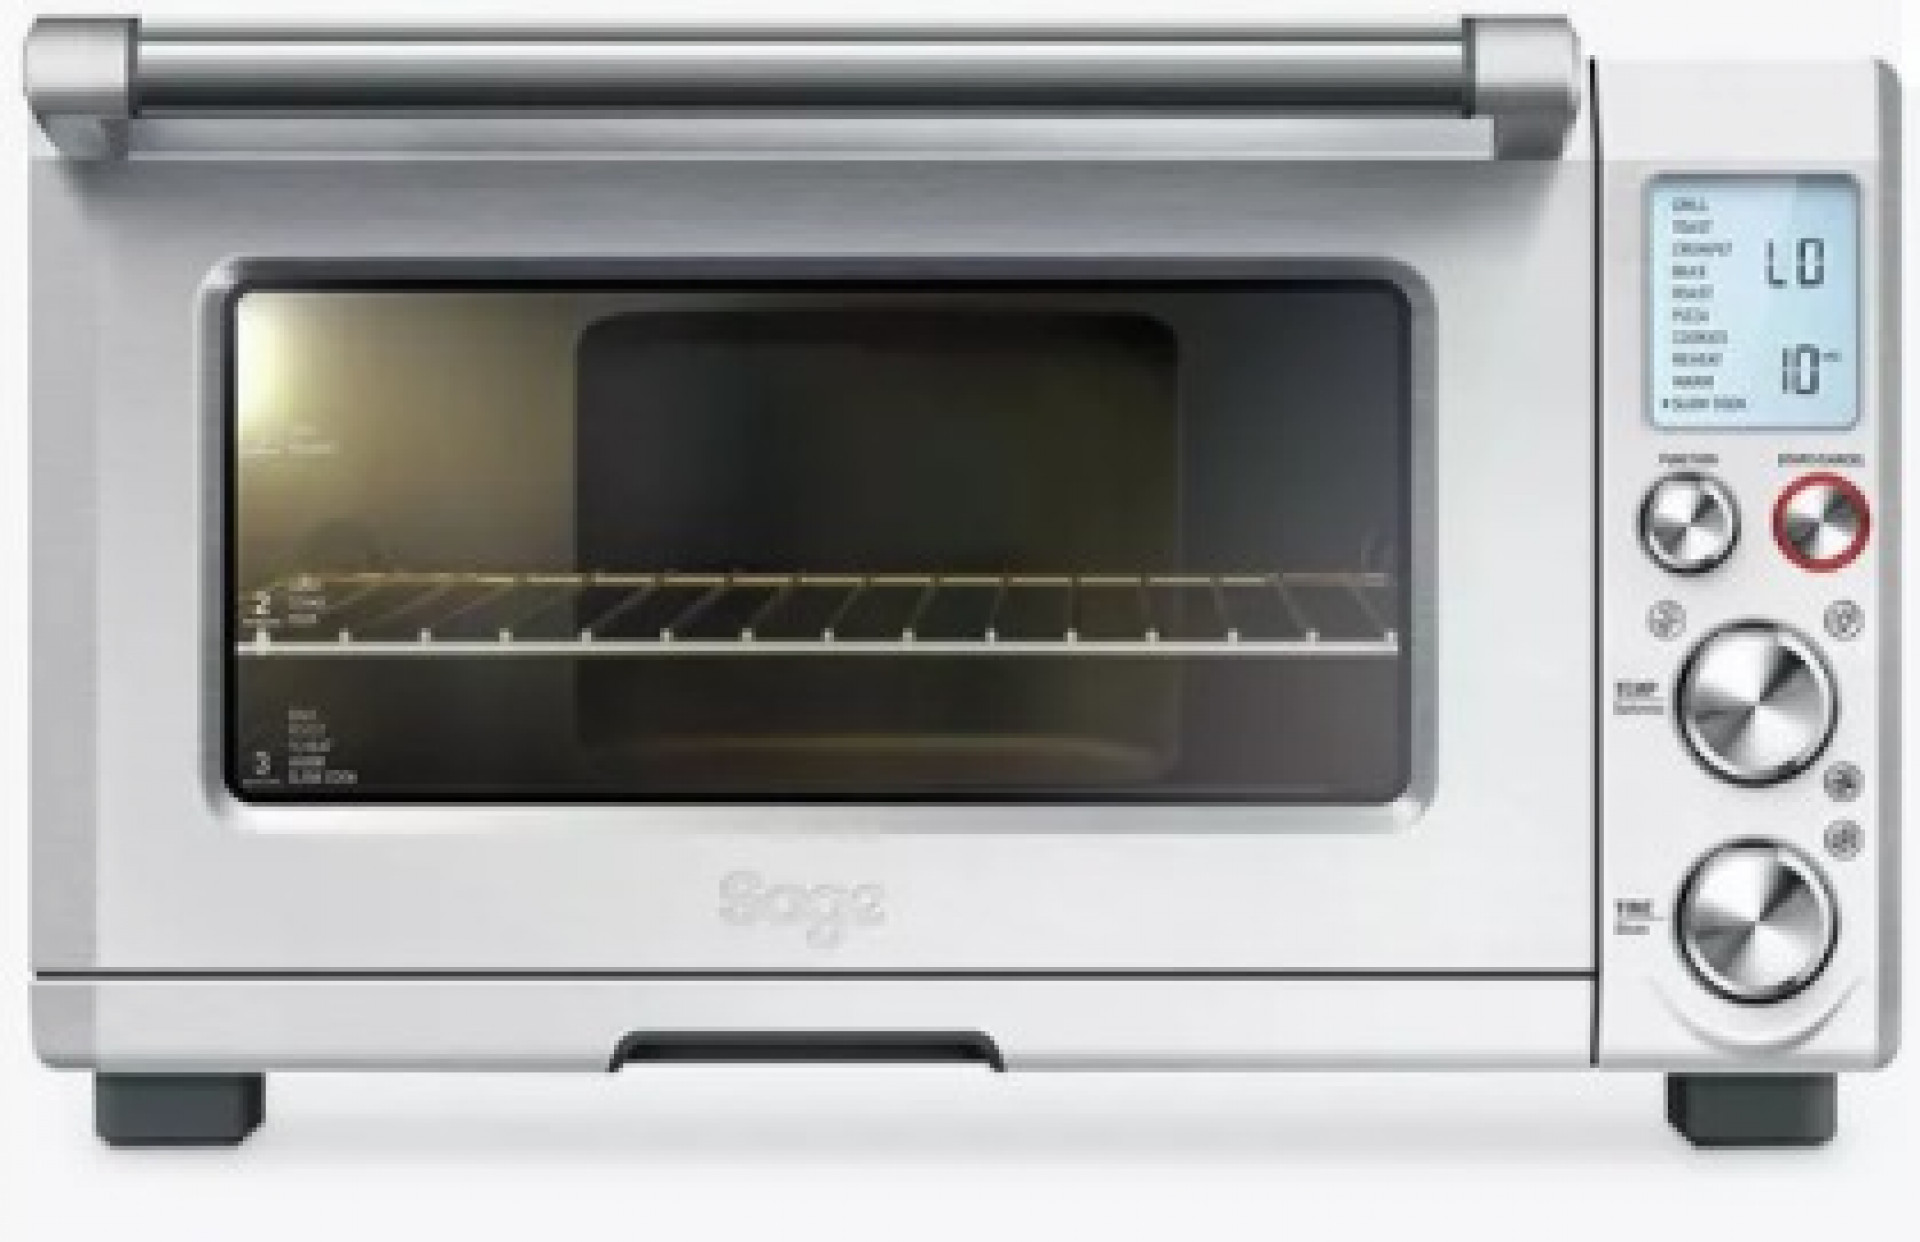 Sage BOV820BSS The Smart Oven Pro, Silver